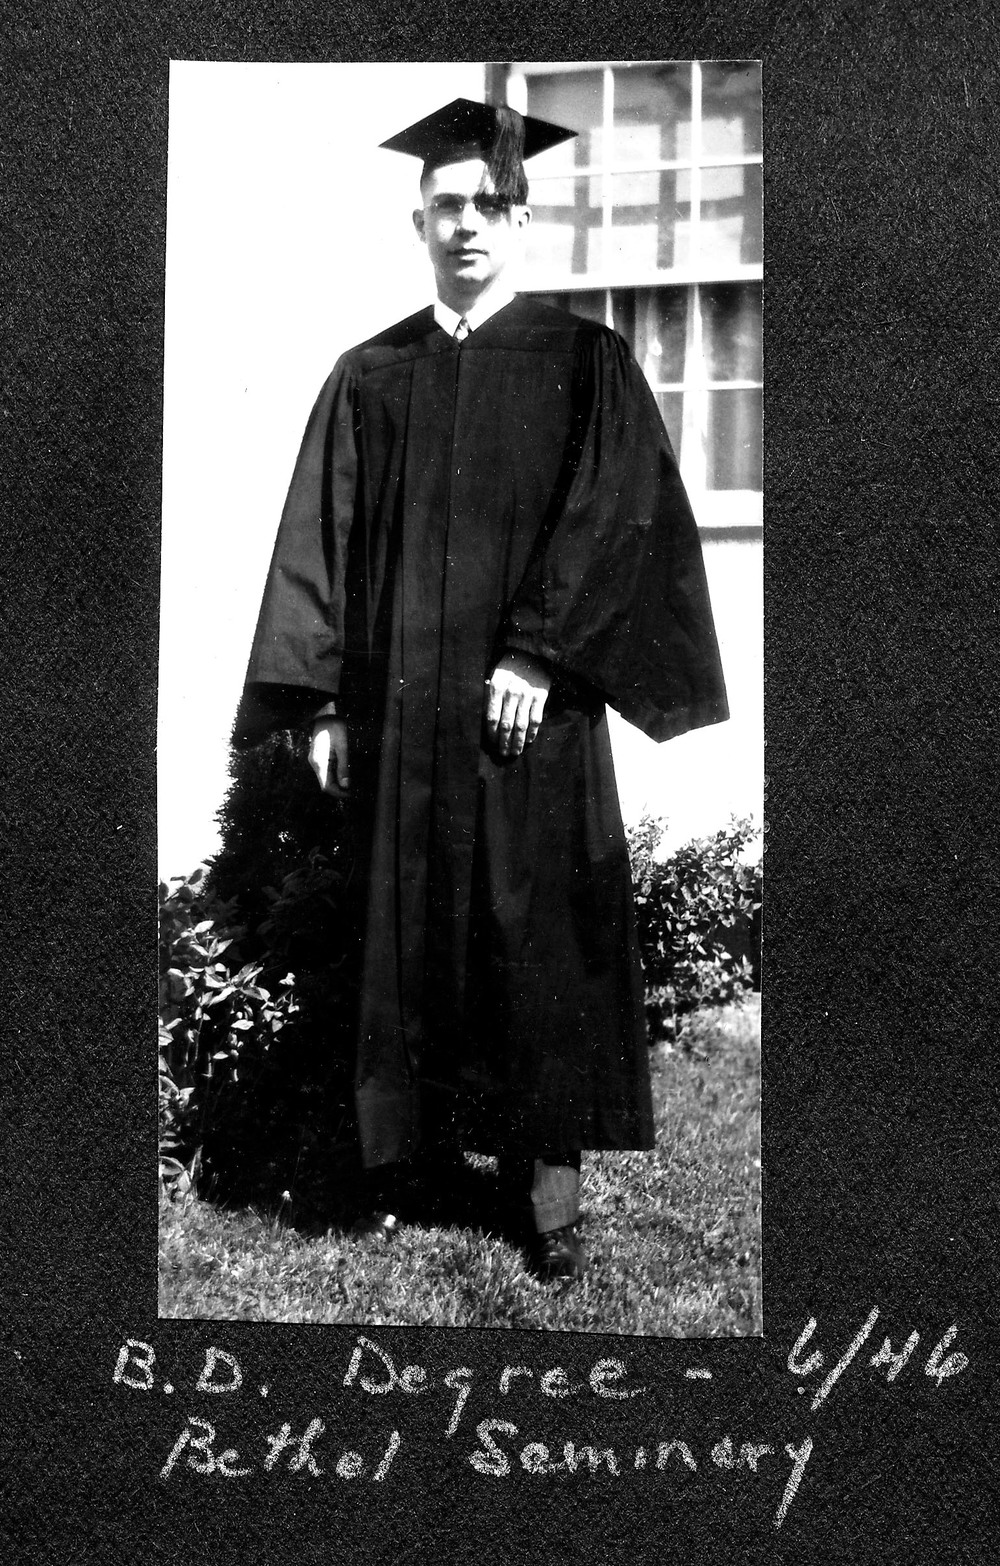 Ernie received his Bachelors of Divinity Degree in 1946 from Bethel Seminary in St. Paul, Minnesota.